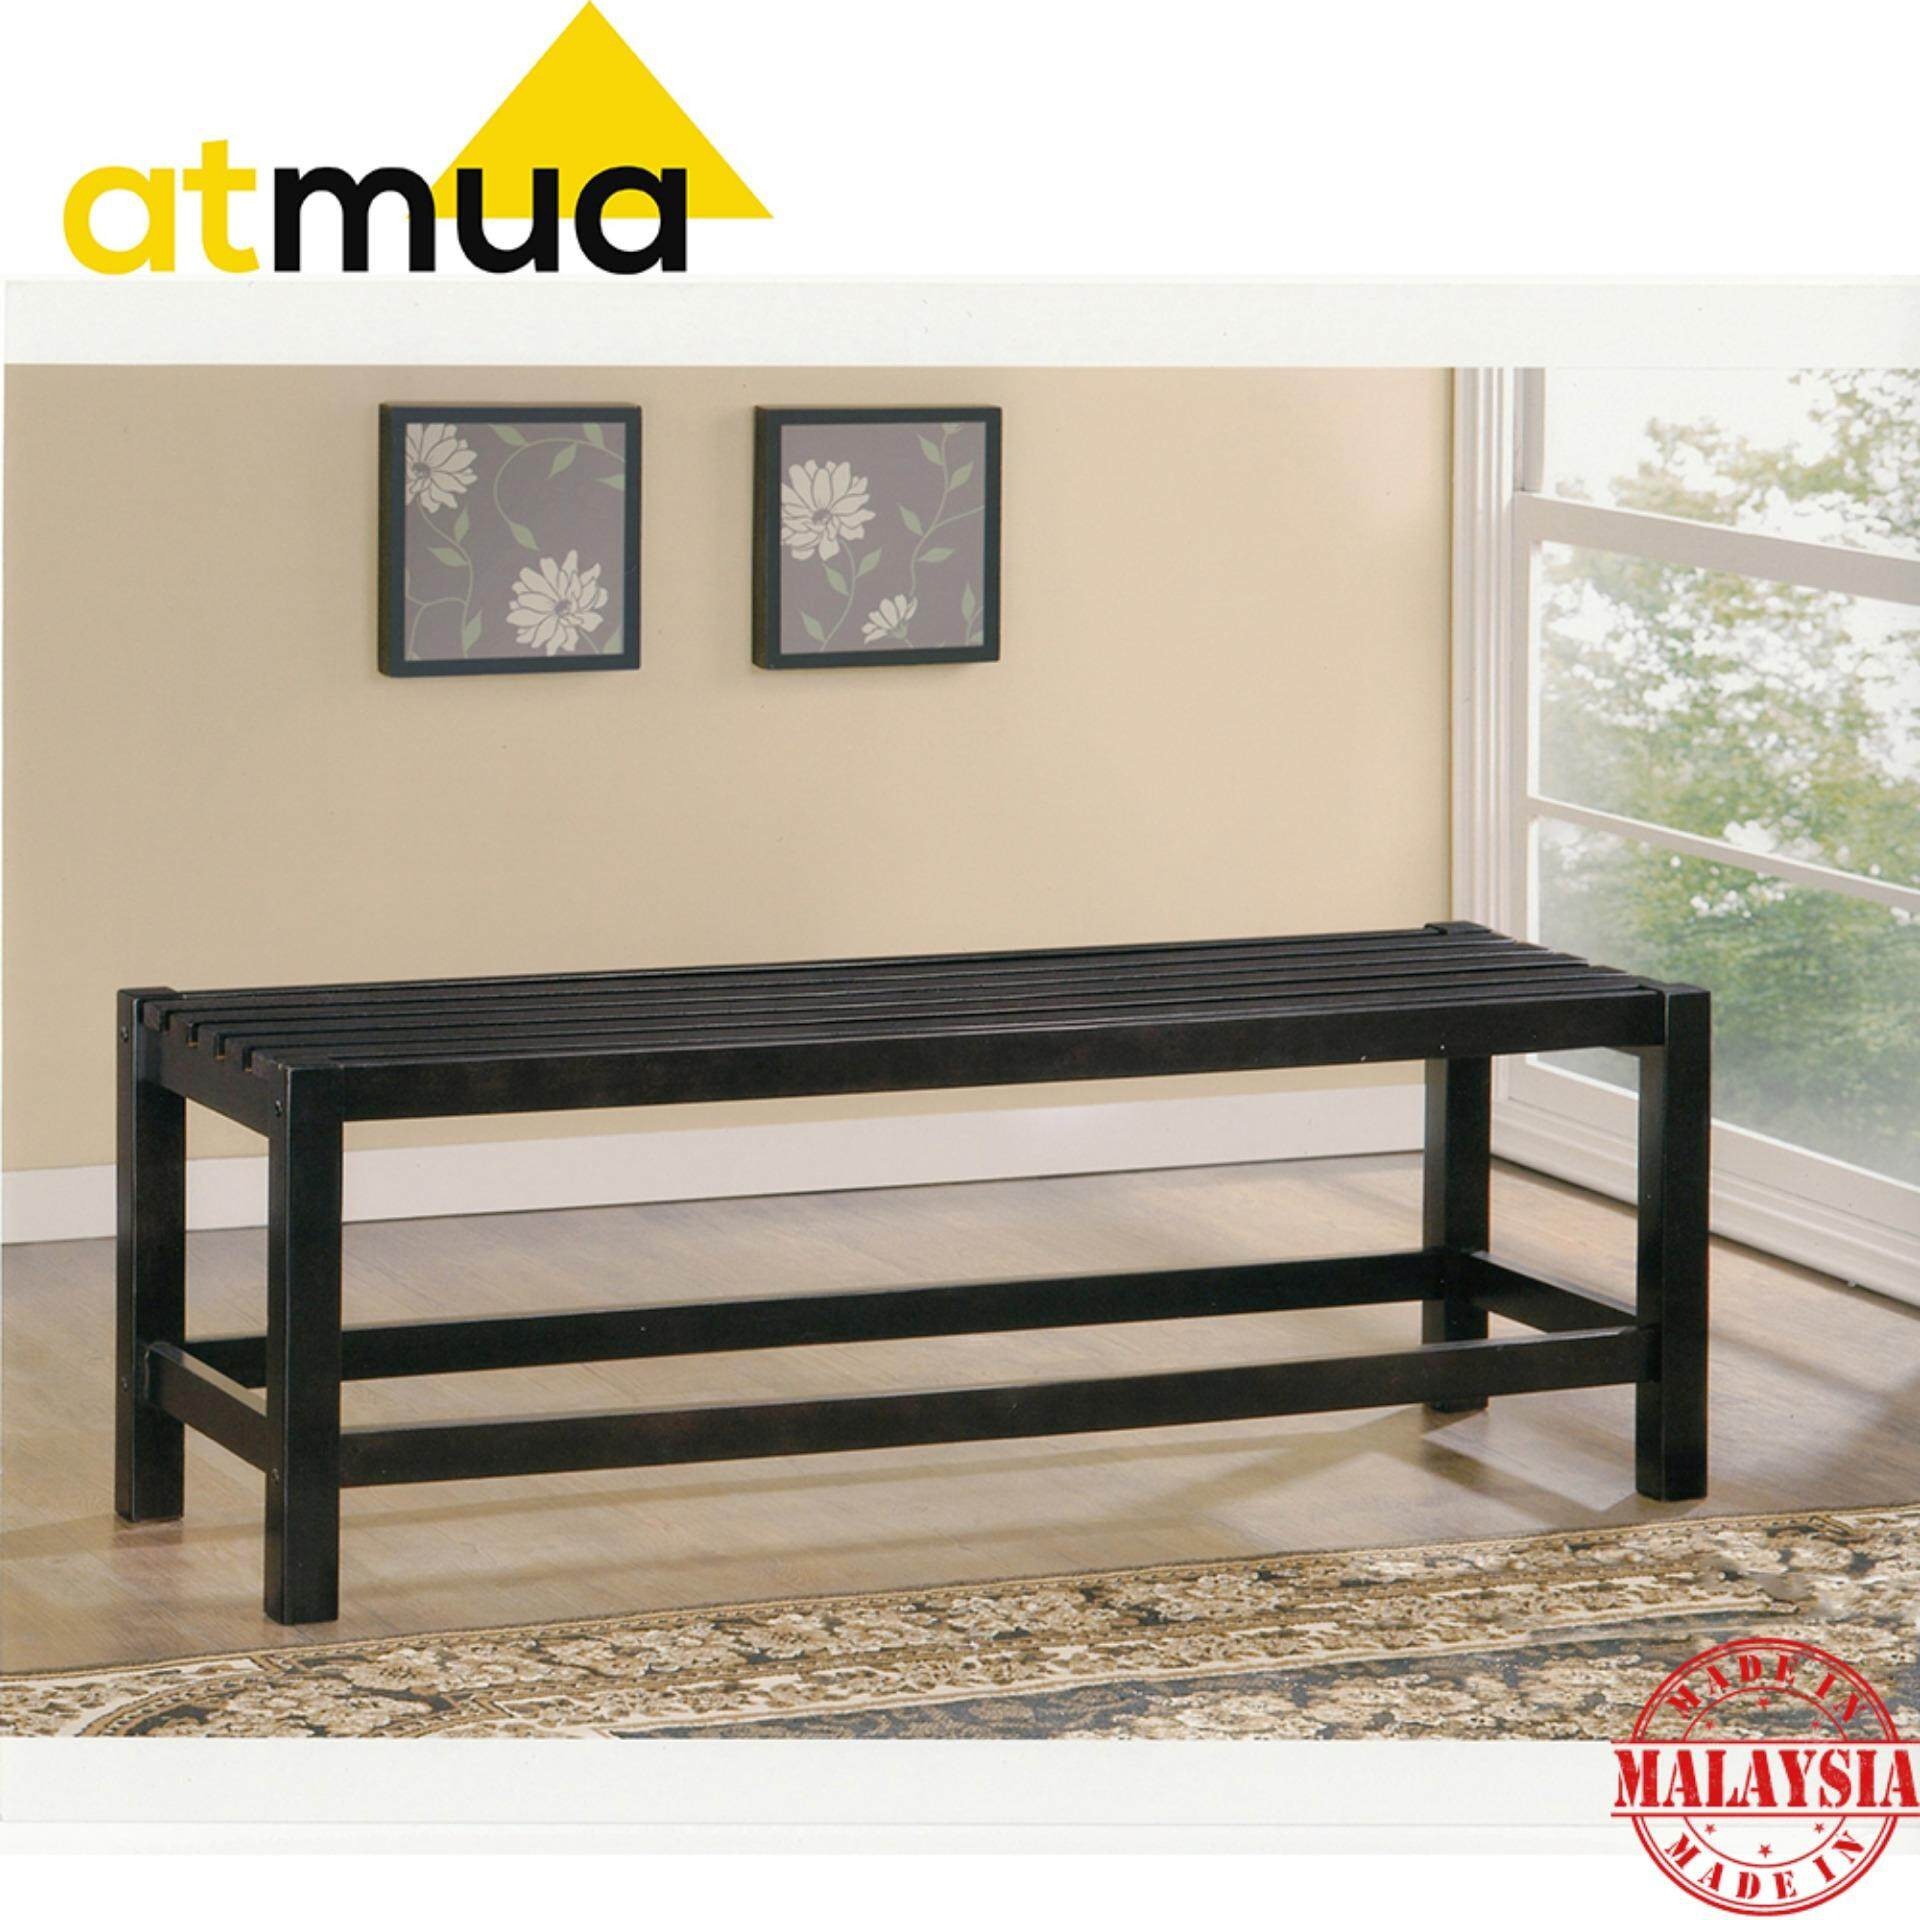 Atmua Solid Rubber Wood Bench Chair- 4 Feet [Full Solid Wood]